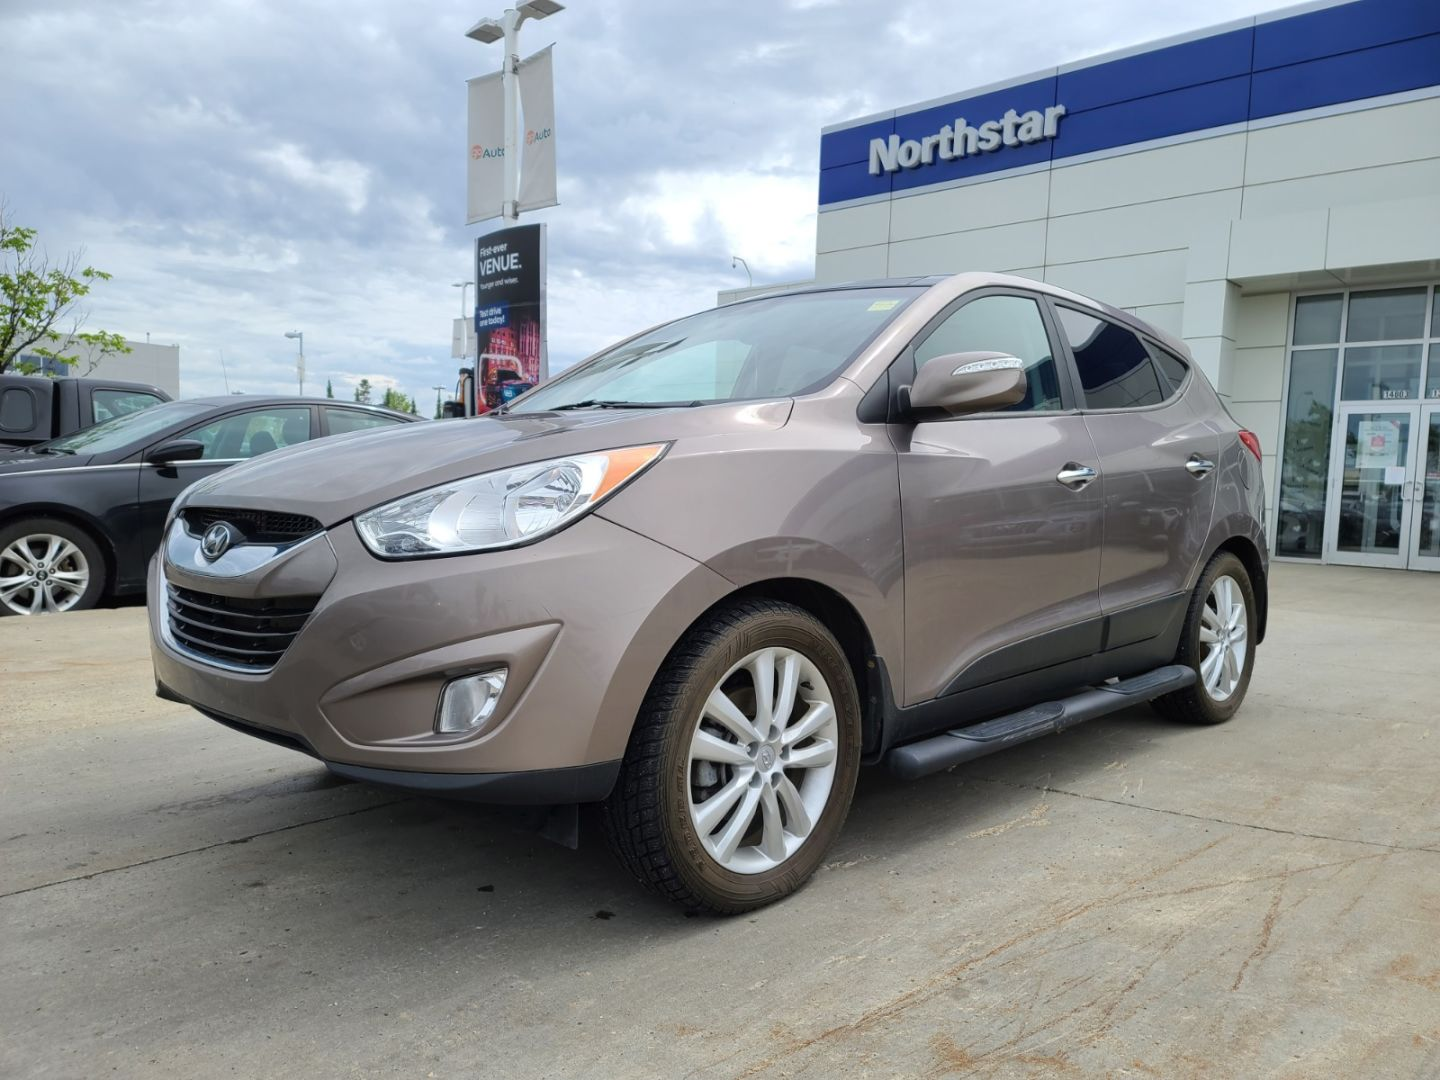 2012 Hyundai Tucson Limited w/Nav for sale in Edmonton, Alberta